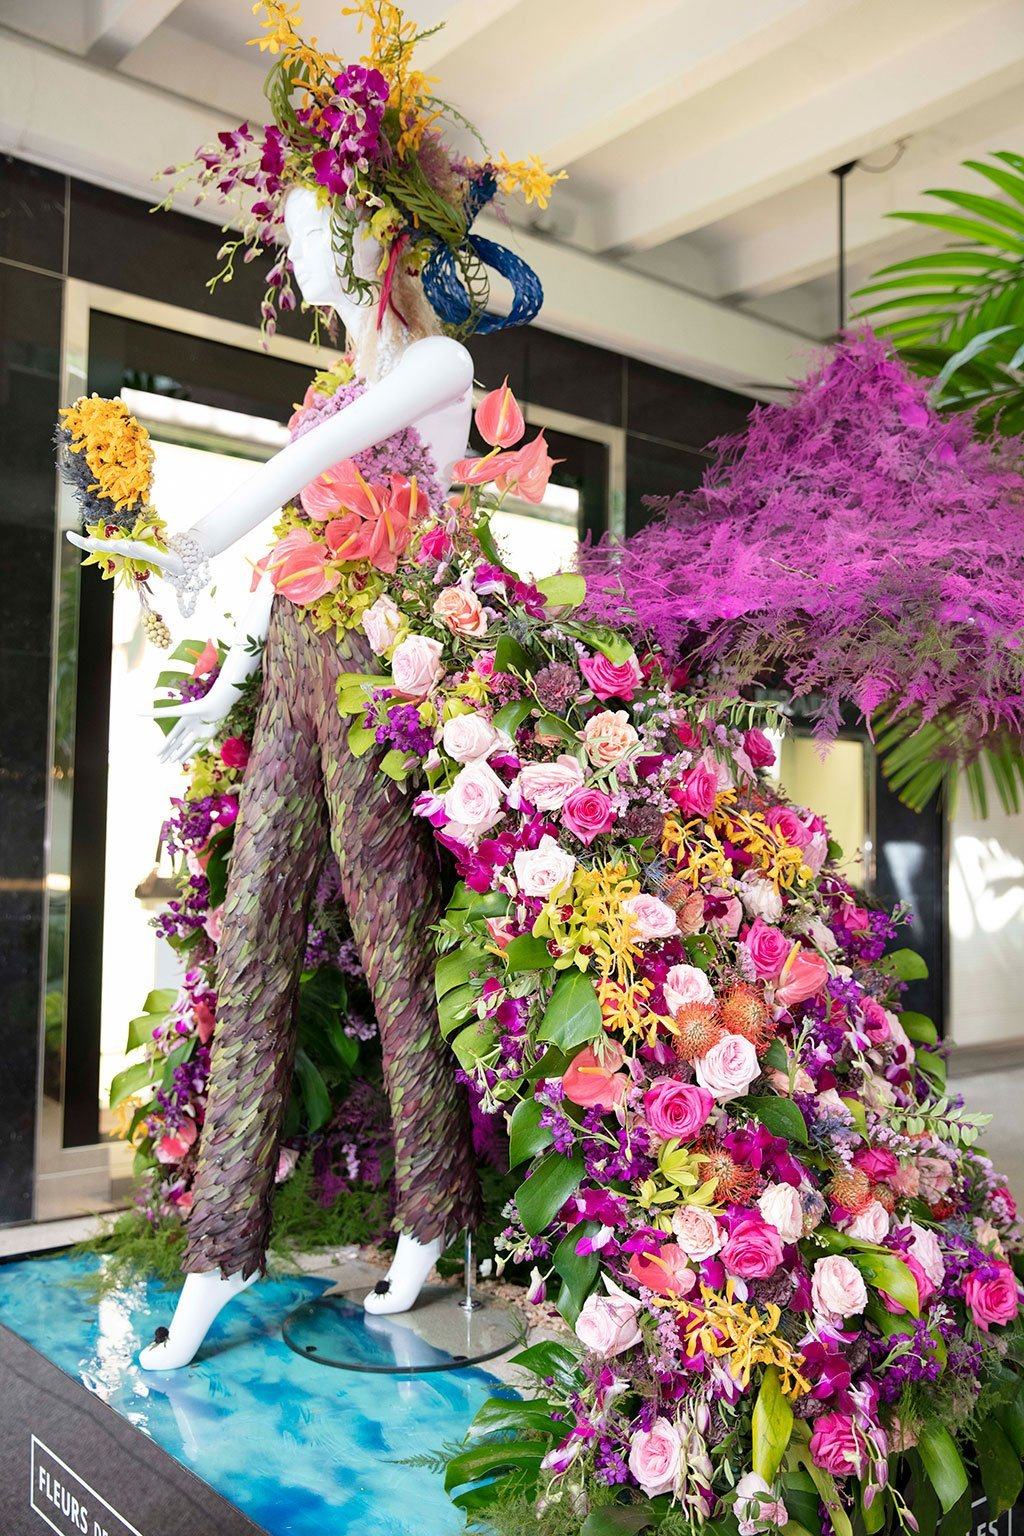 Fisher Island Gives Mannequin Created by Hayal Flowers. Photo by Theodora Richter